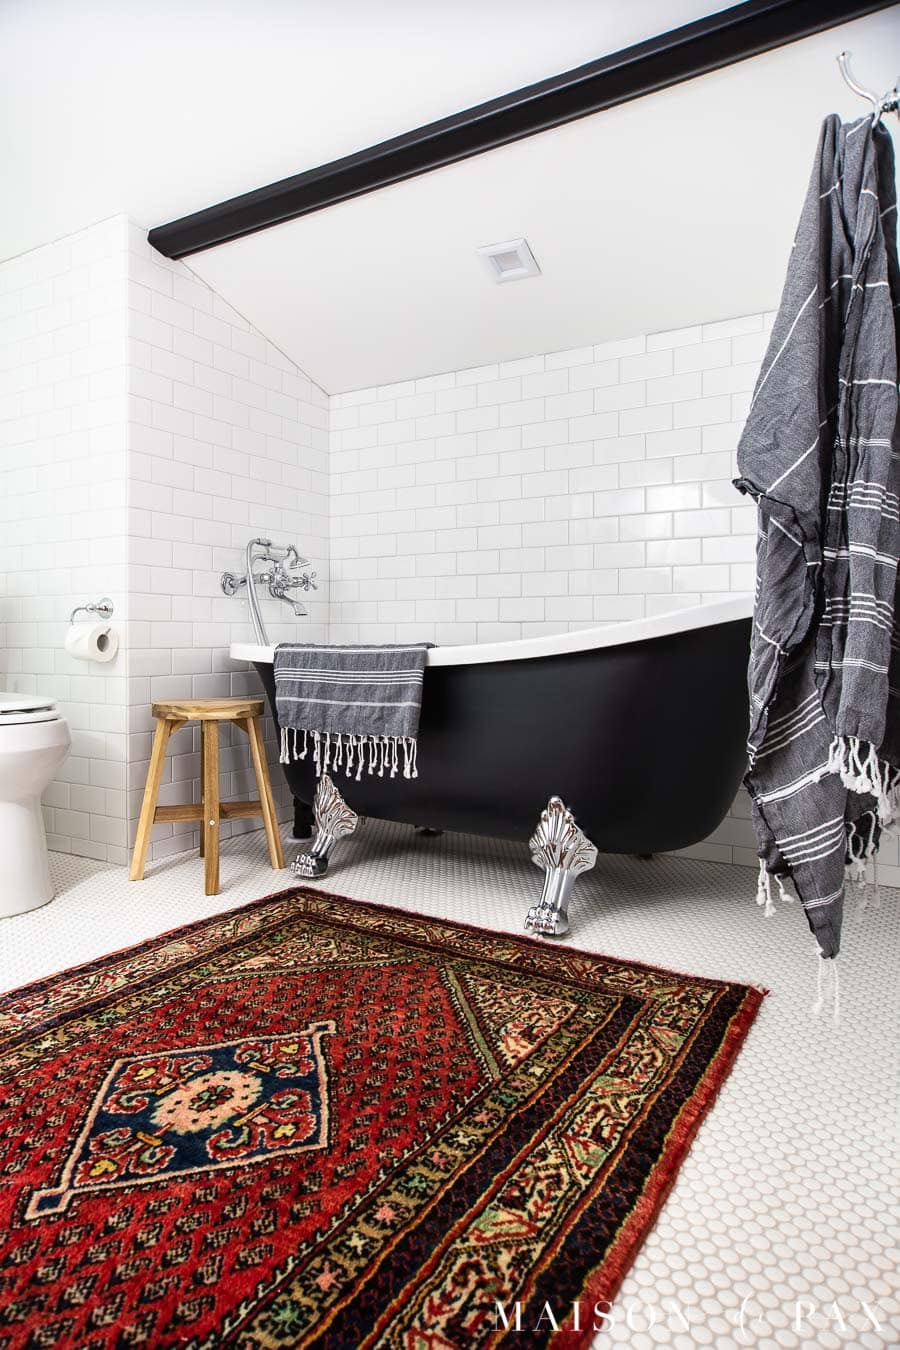 white bathroom with subway tile and black clawfoot tub | Maison de Pax